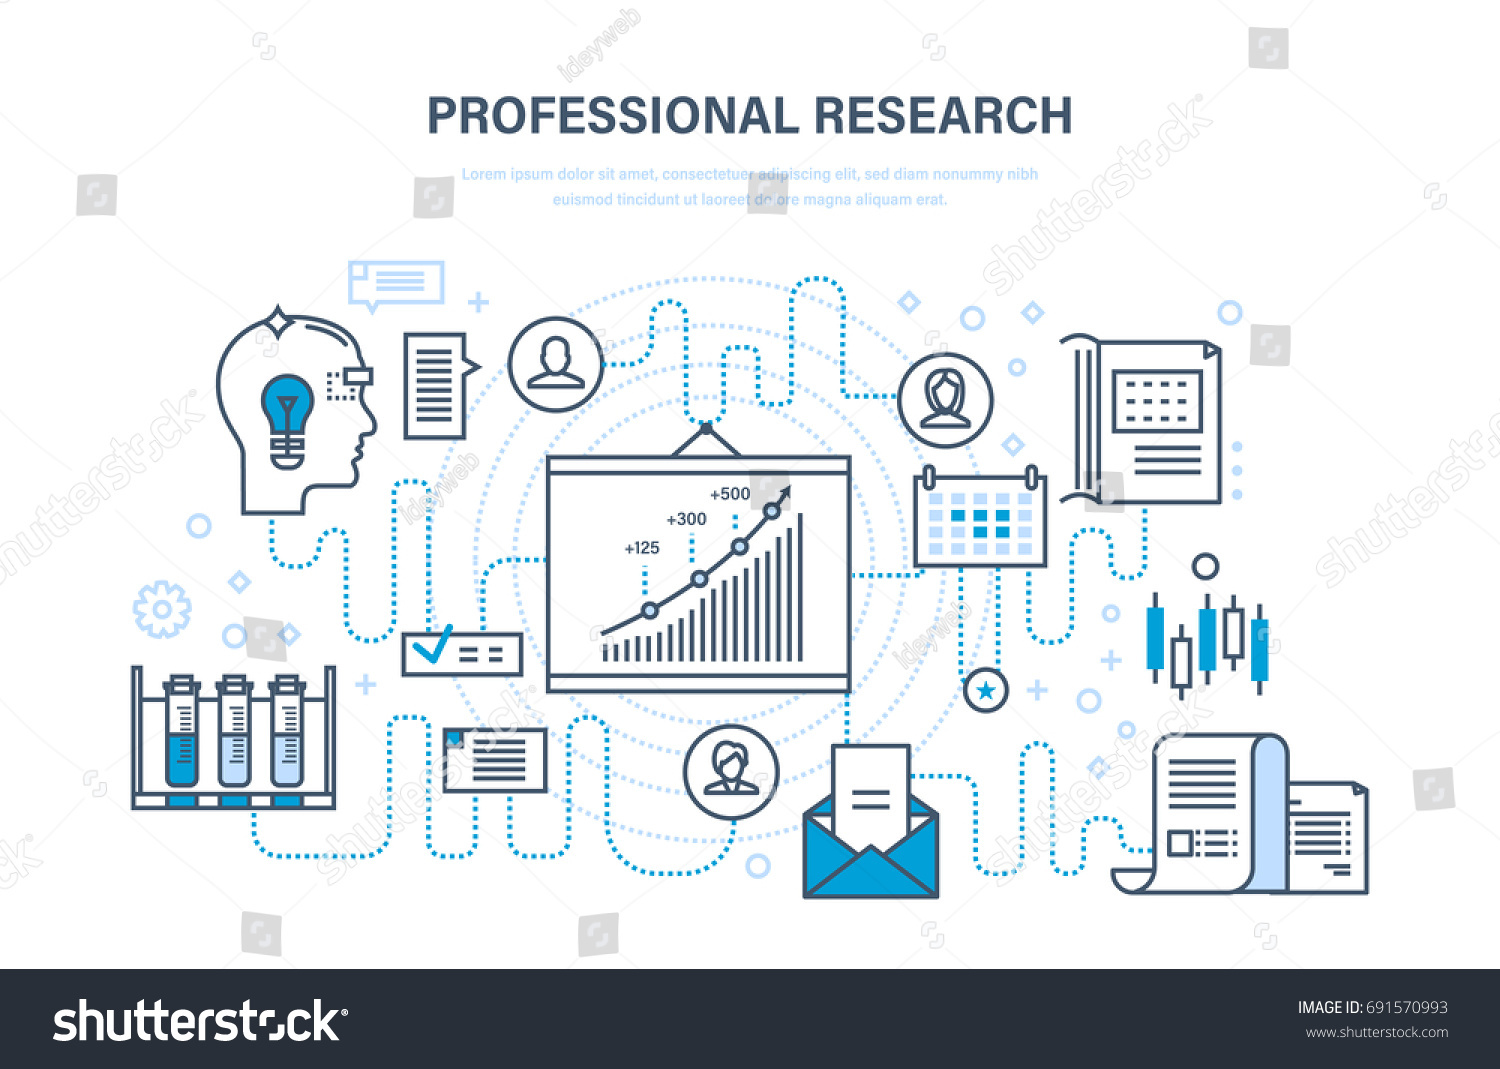 Professional Research. Business Planning And Business Strategy, Marketing,  Monitoring, Analysis, Systems